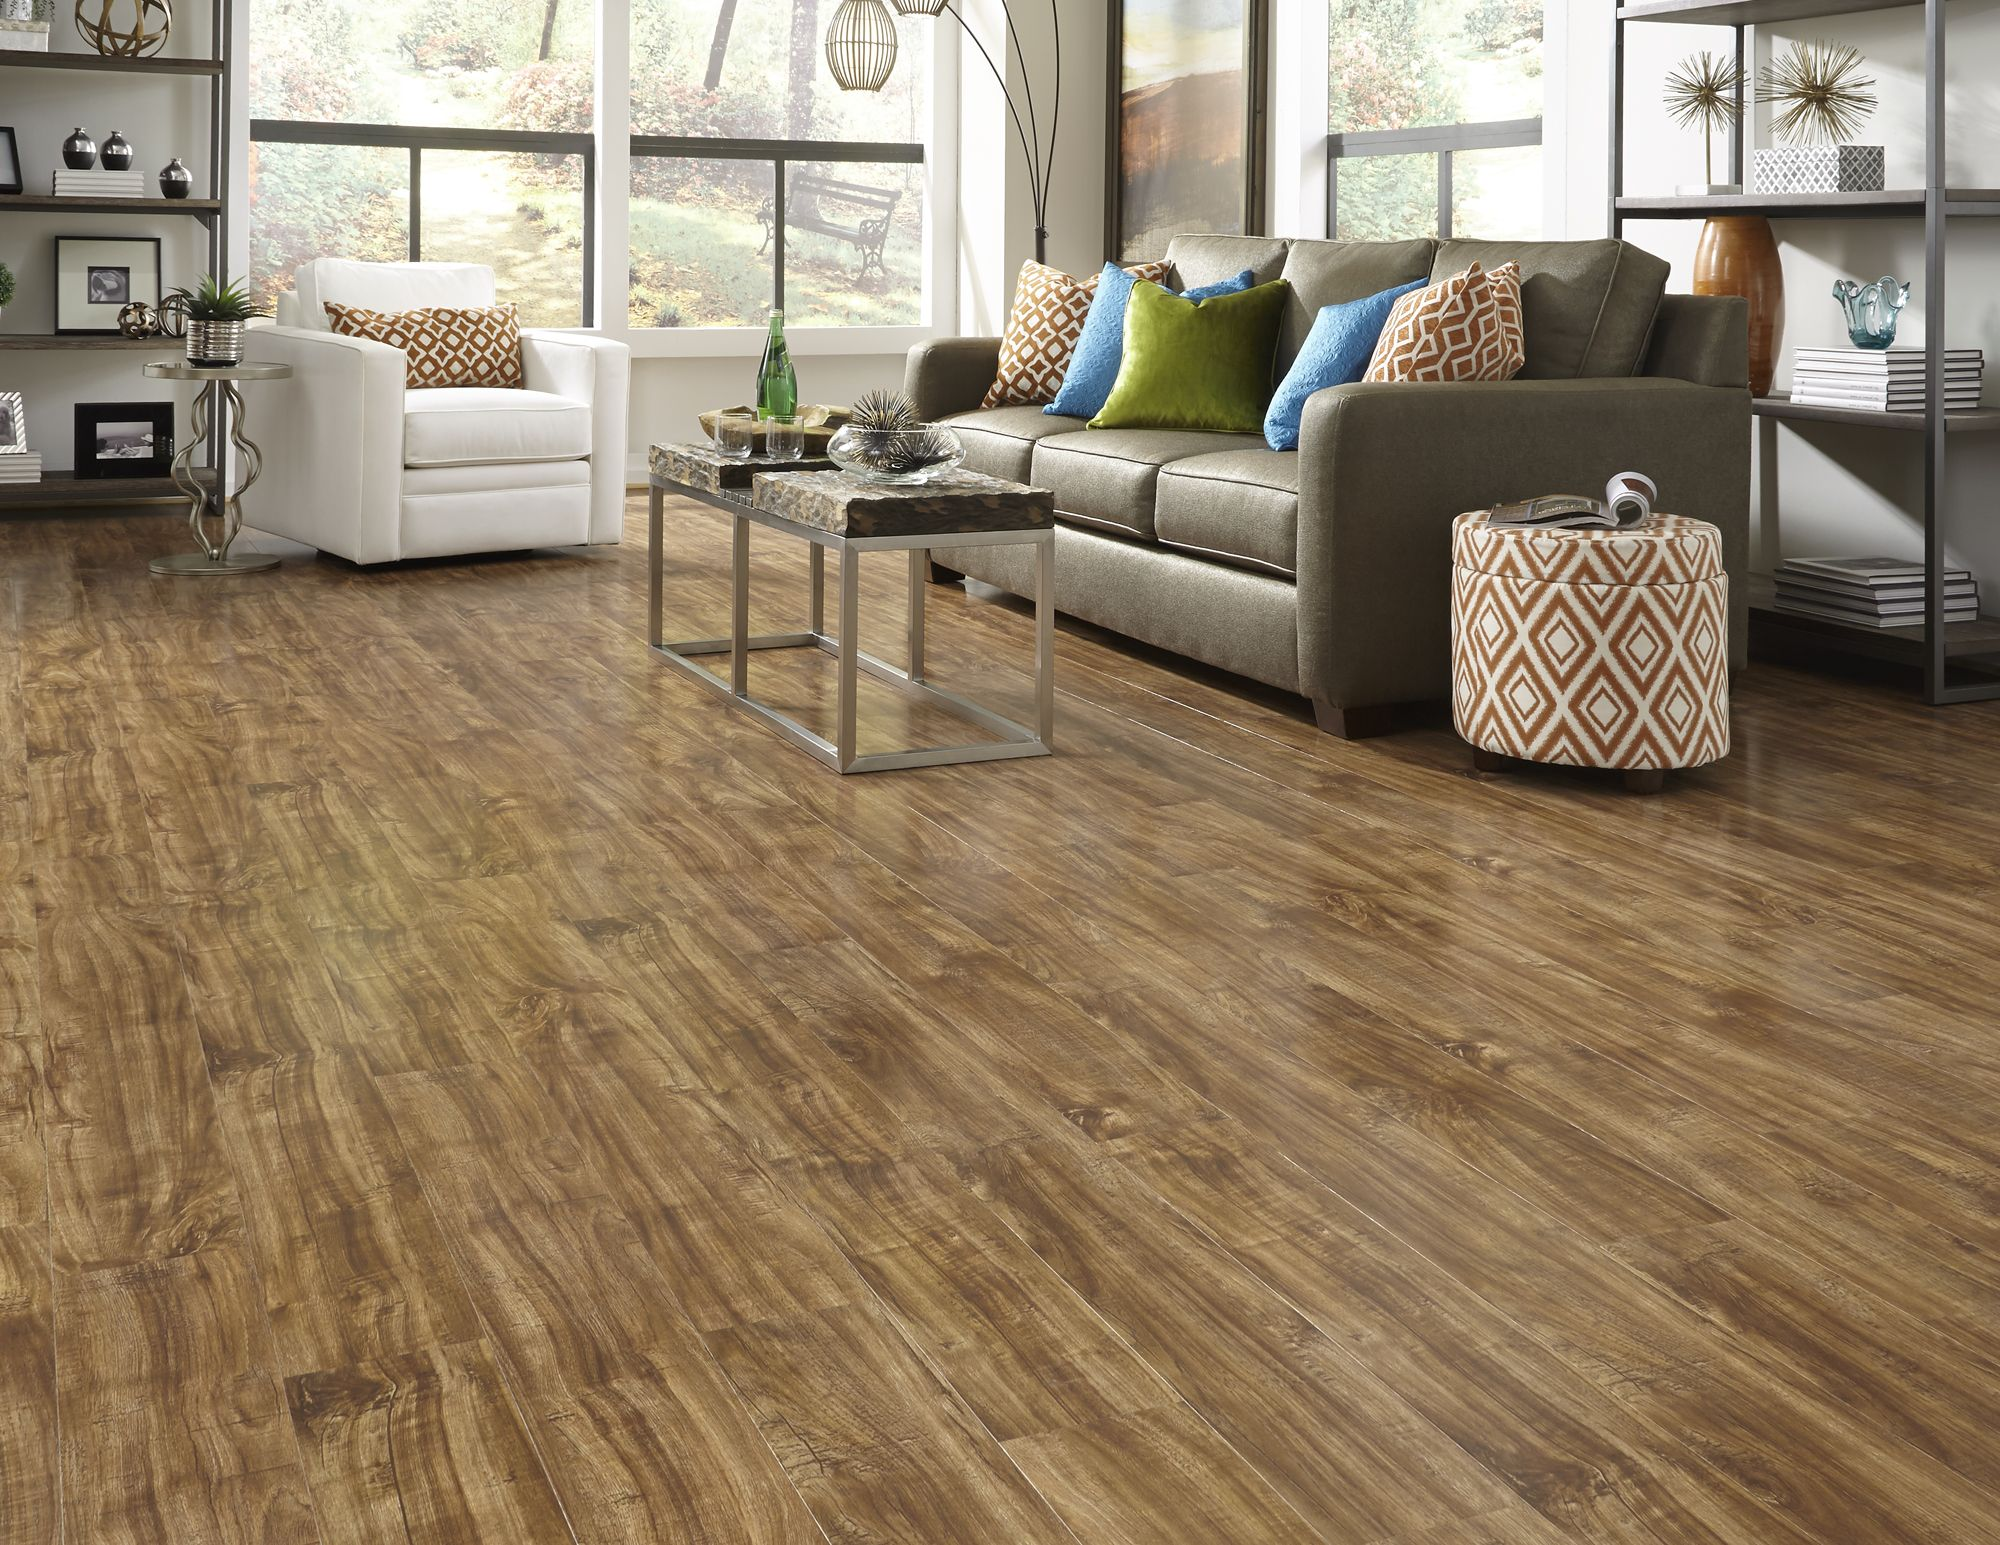 Pearisburg Barn Board   A Dream Home Laminate